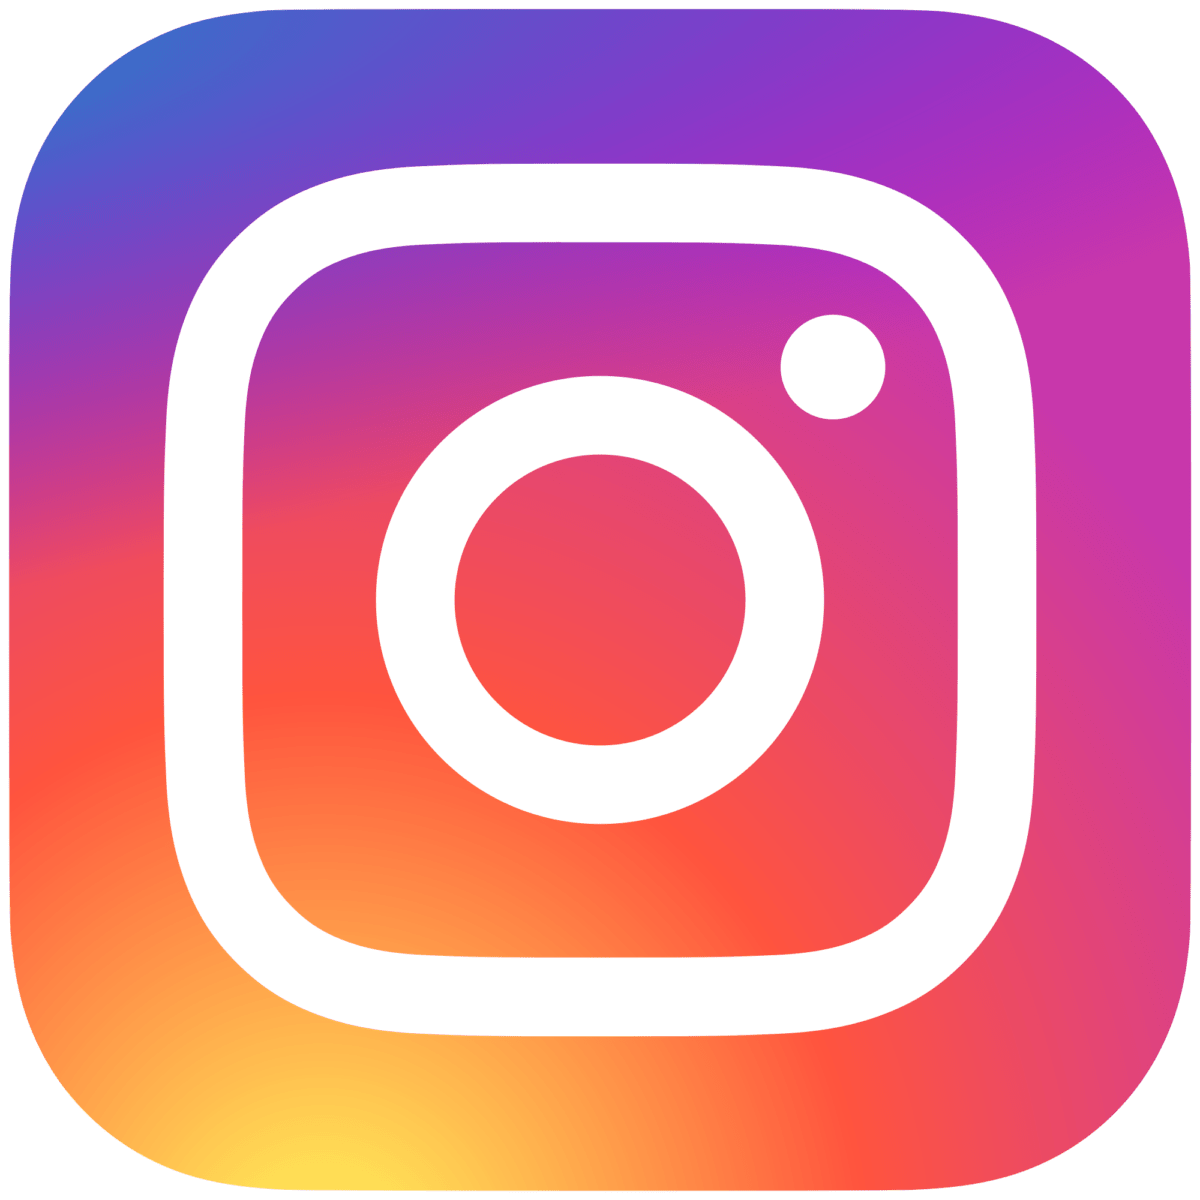 Image result for ig logo